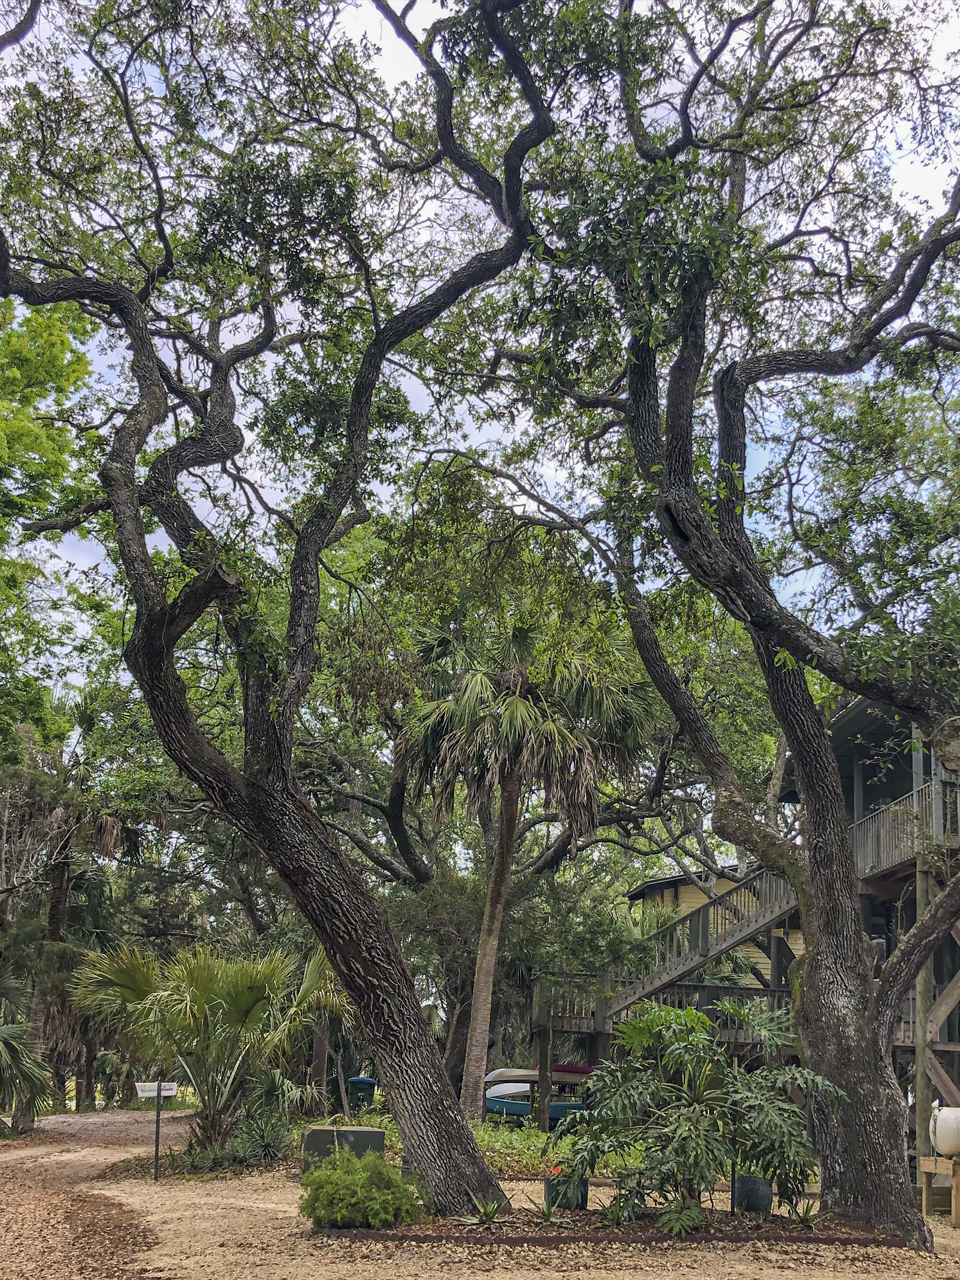 These sand live oaks have grown in a grove configuration and have naturally grown in the direction where each of them can access the most sunlight. Note the curvature of the trunk as it leans out, and then grows more upright.